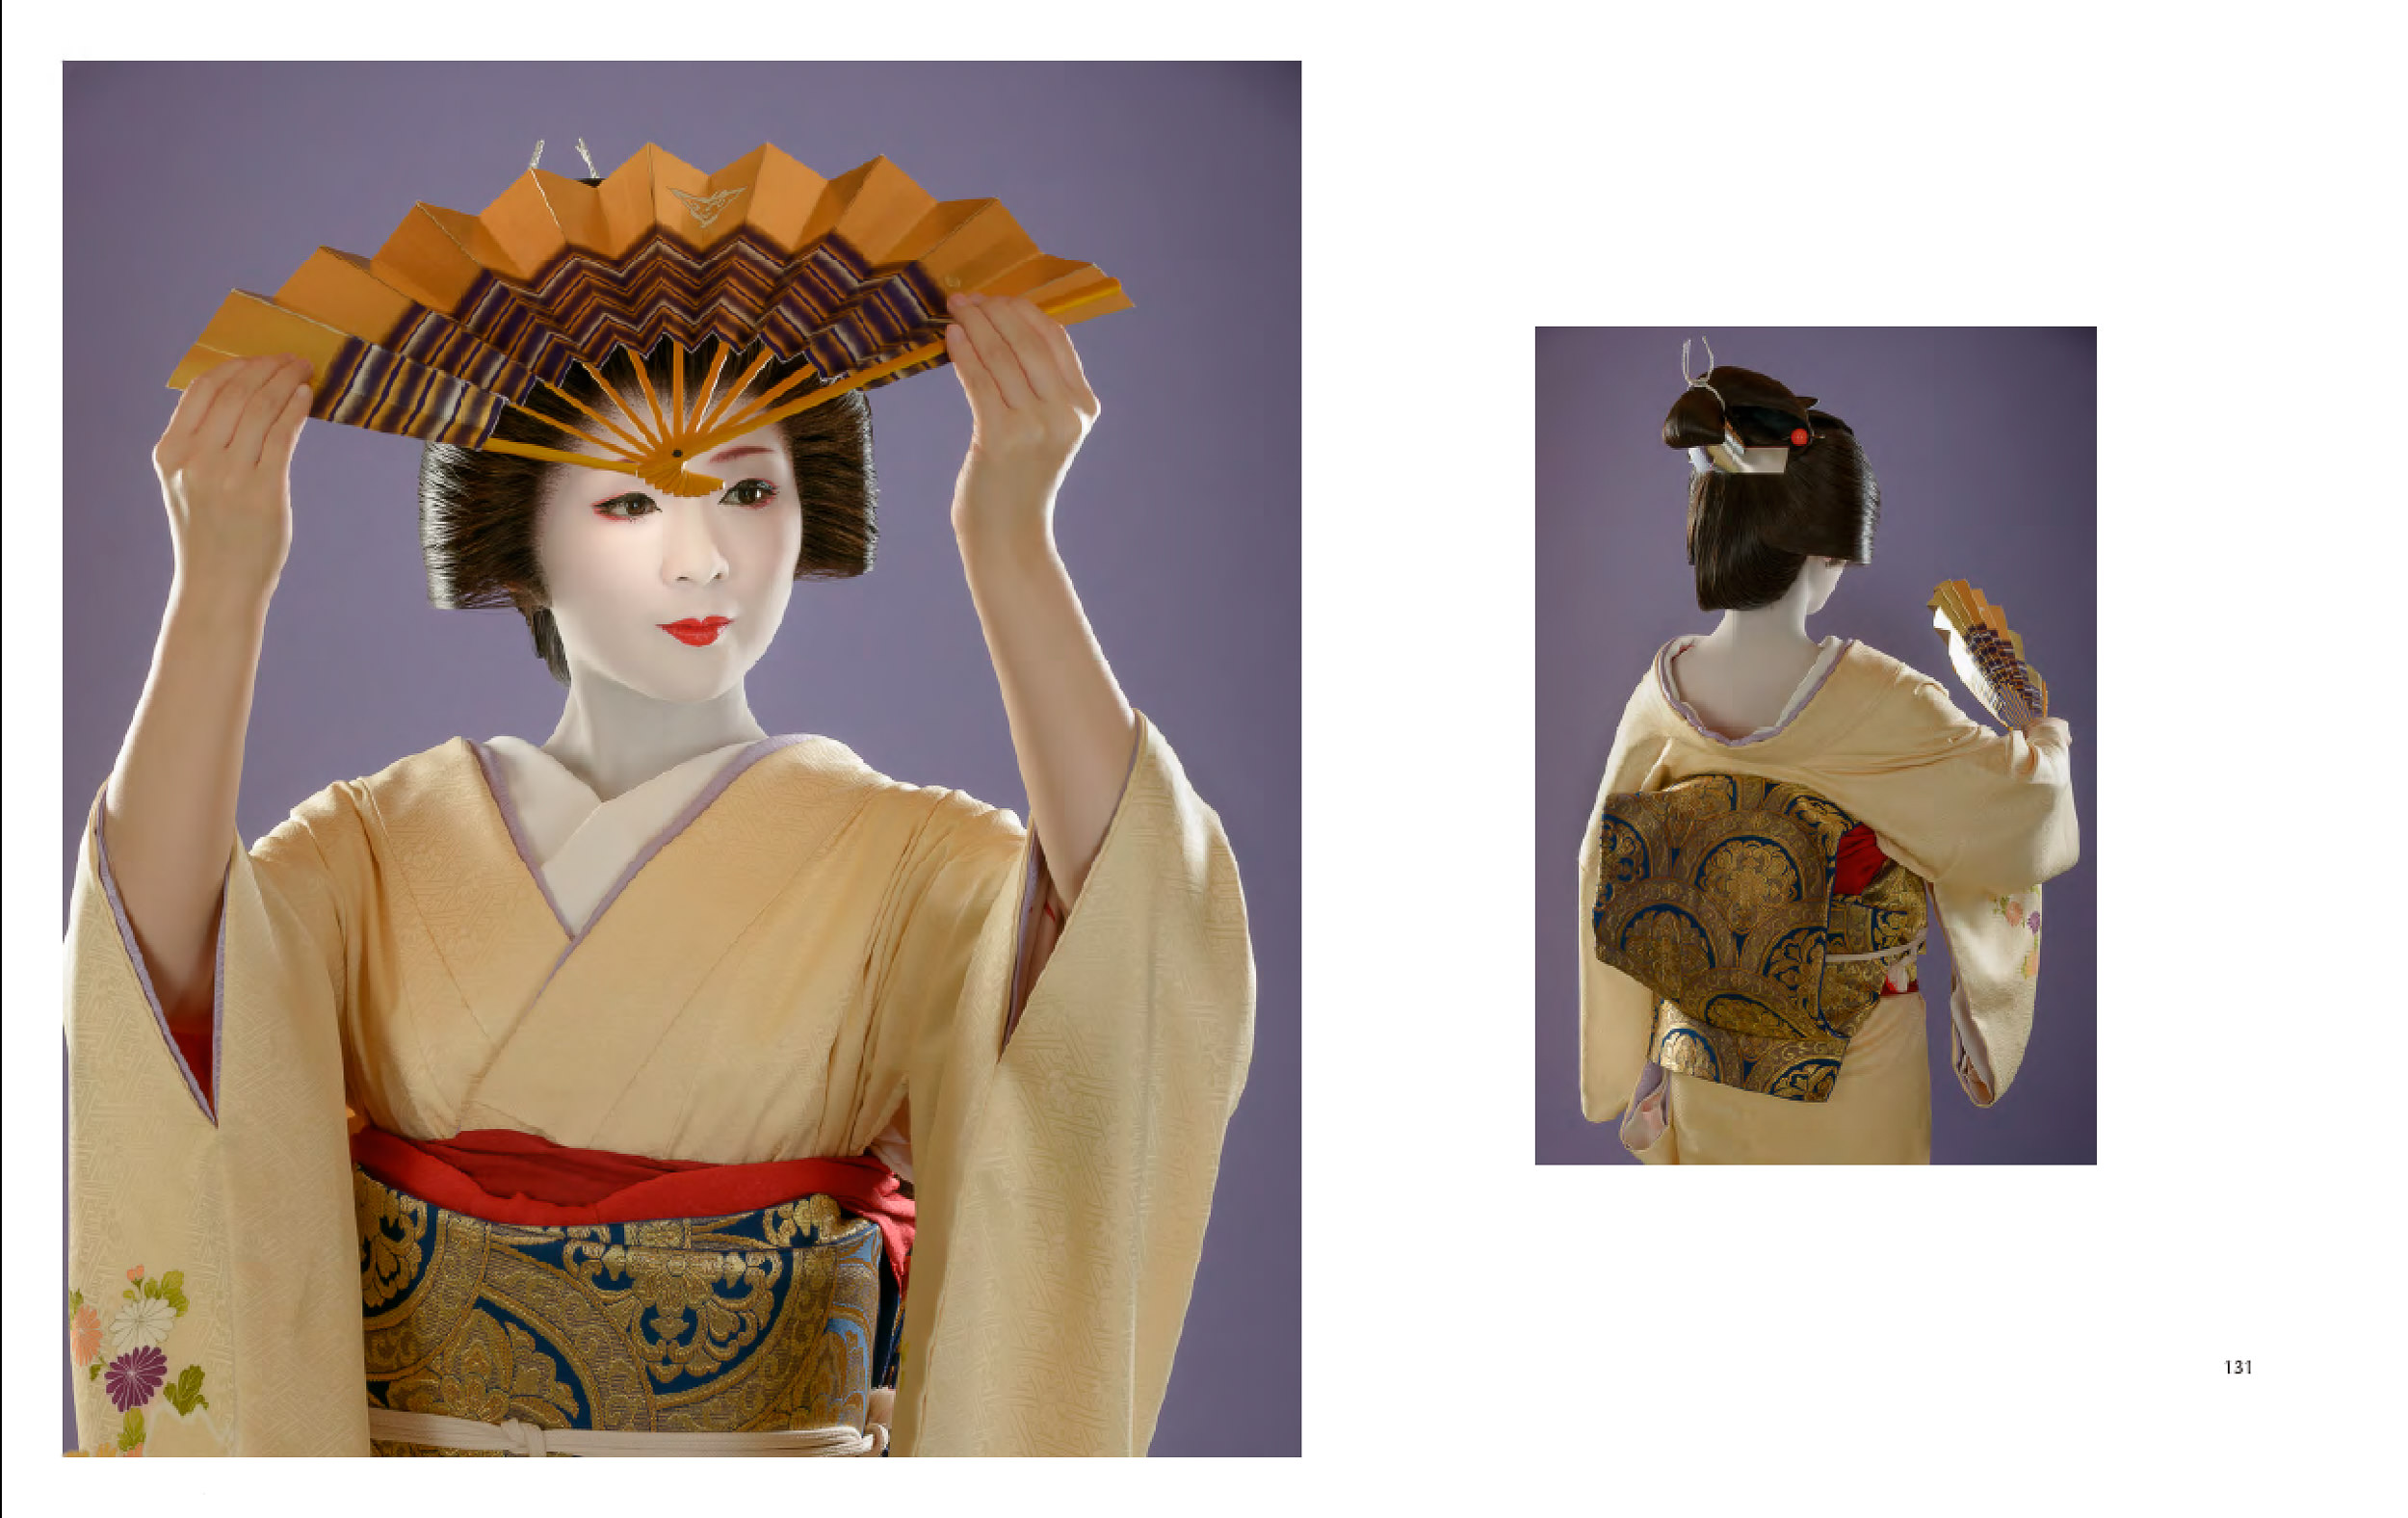 Now-a-Geisha-pages-130-1.jpg